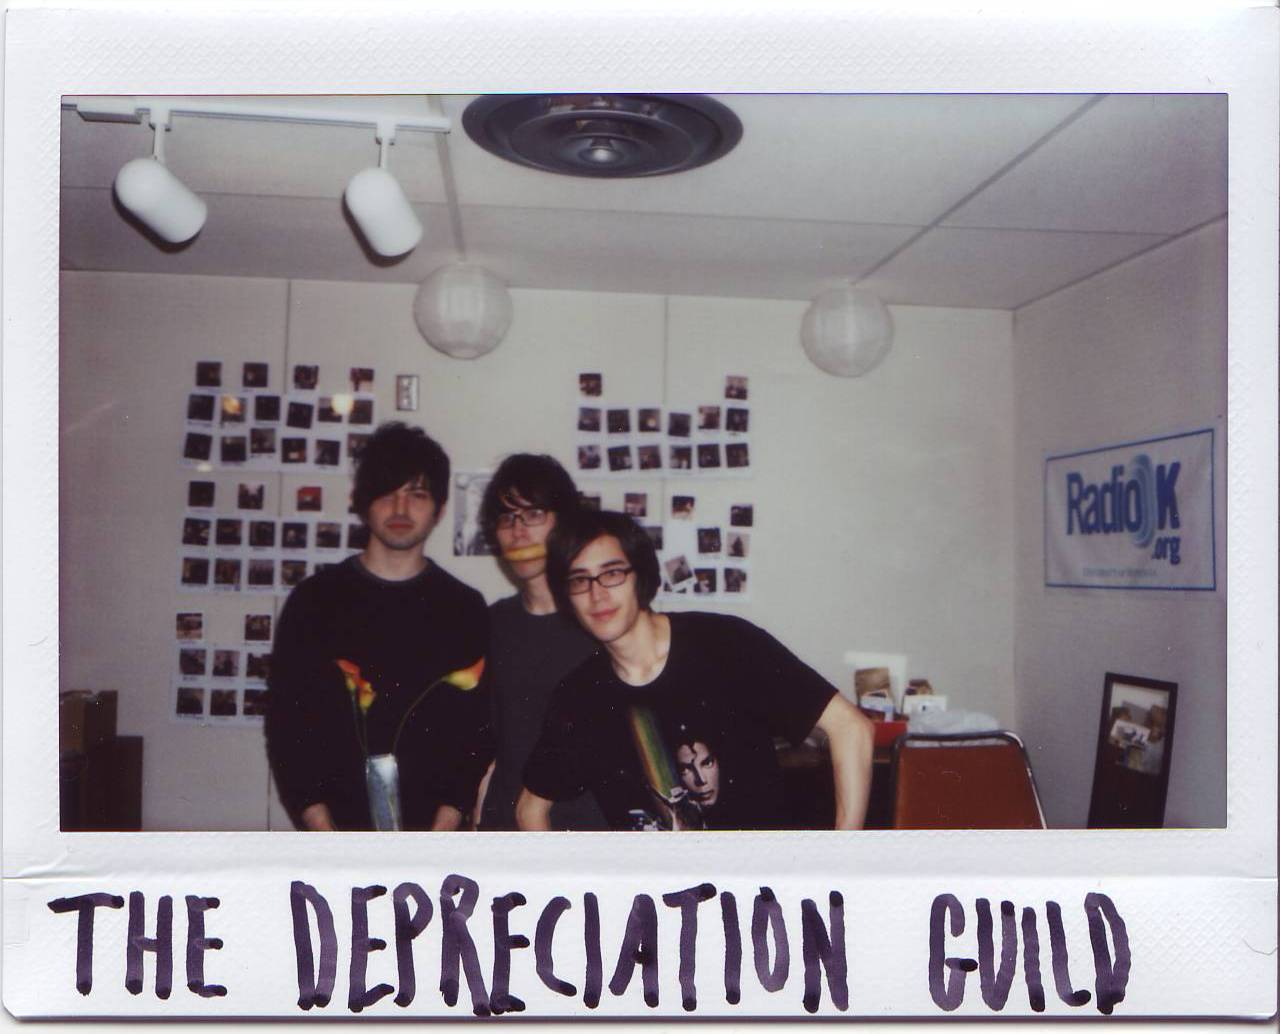 The Depreciation Guild